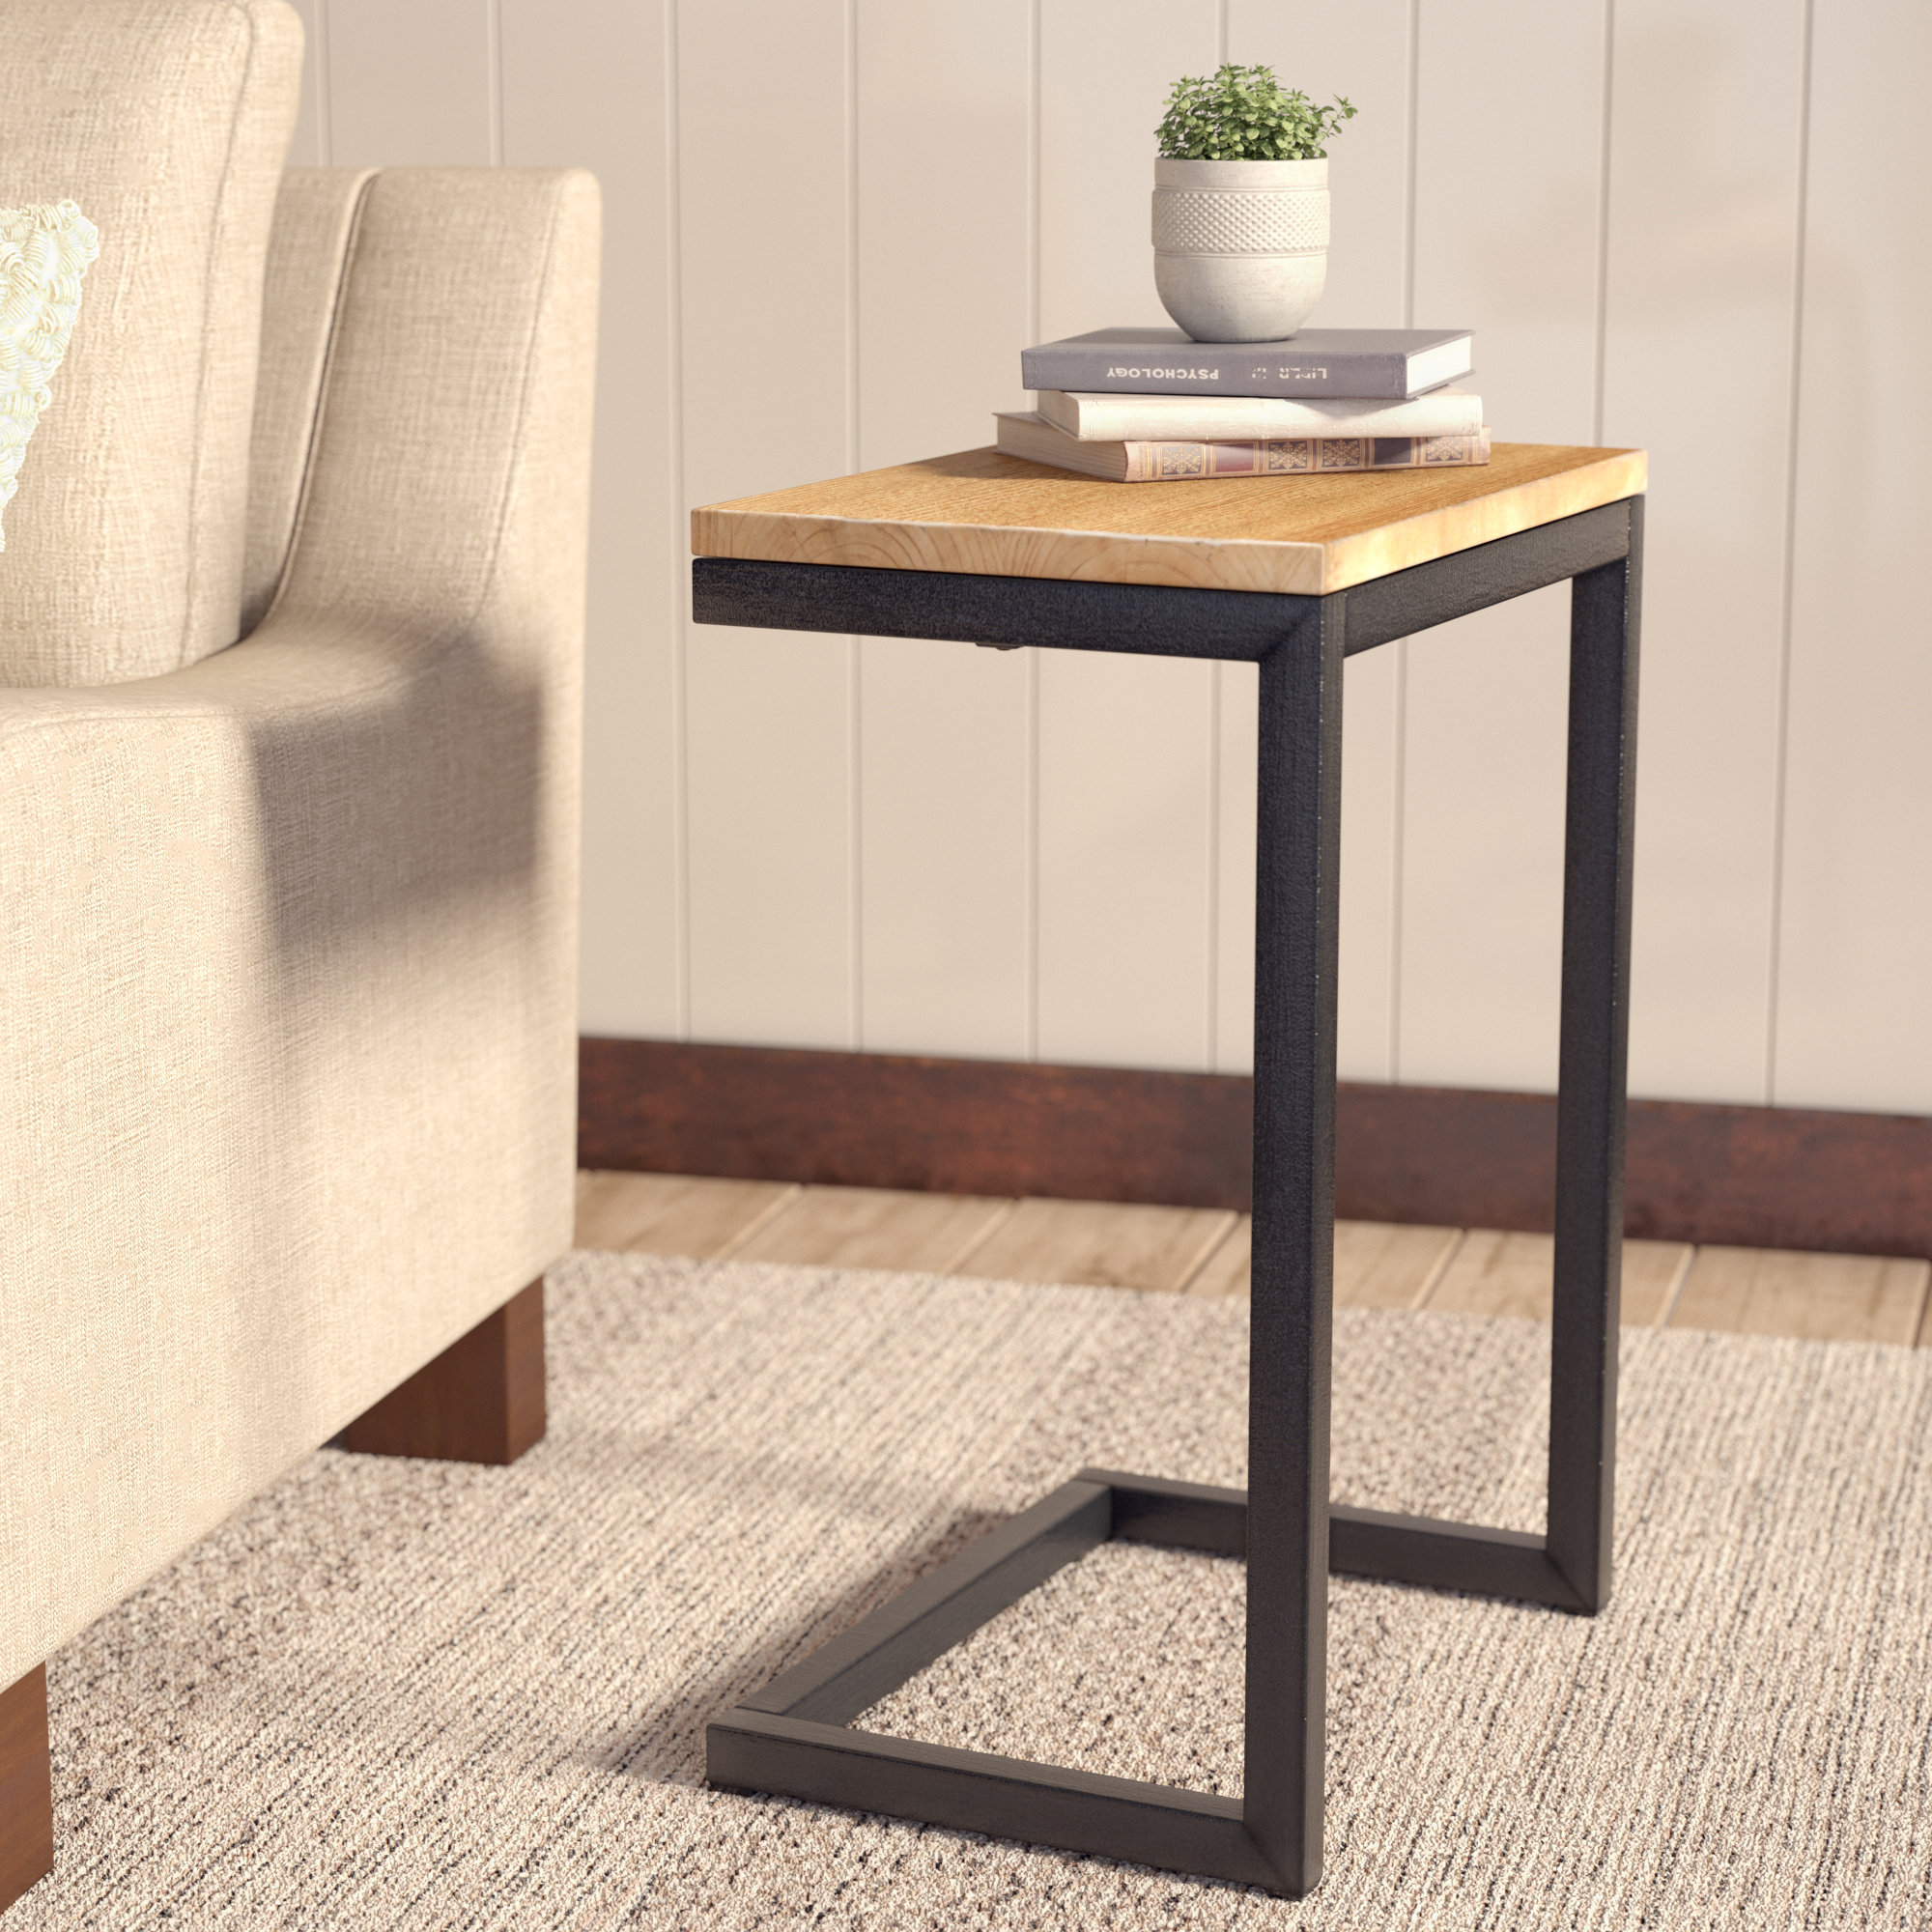 rectangle small under end side tables you love nayara antique table accent rectangular old dining classy lamps natural cherry patio slim nightstand free quilted runner patterns